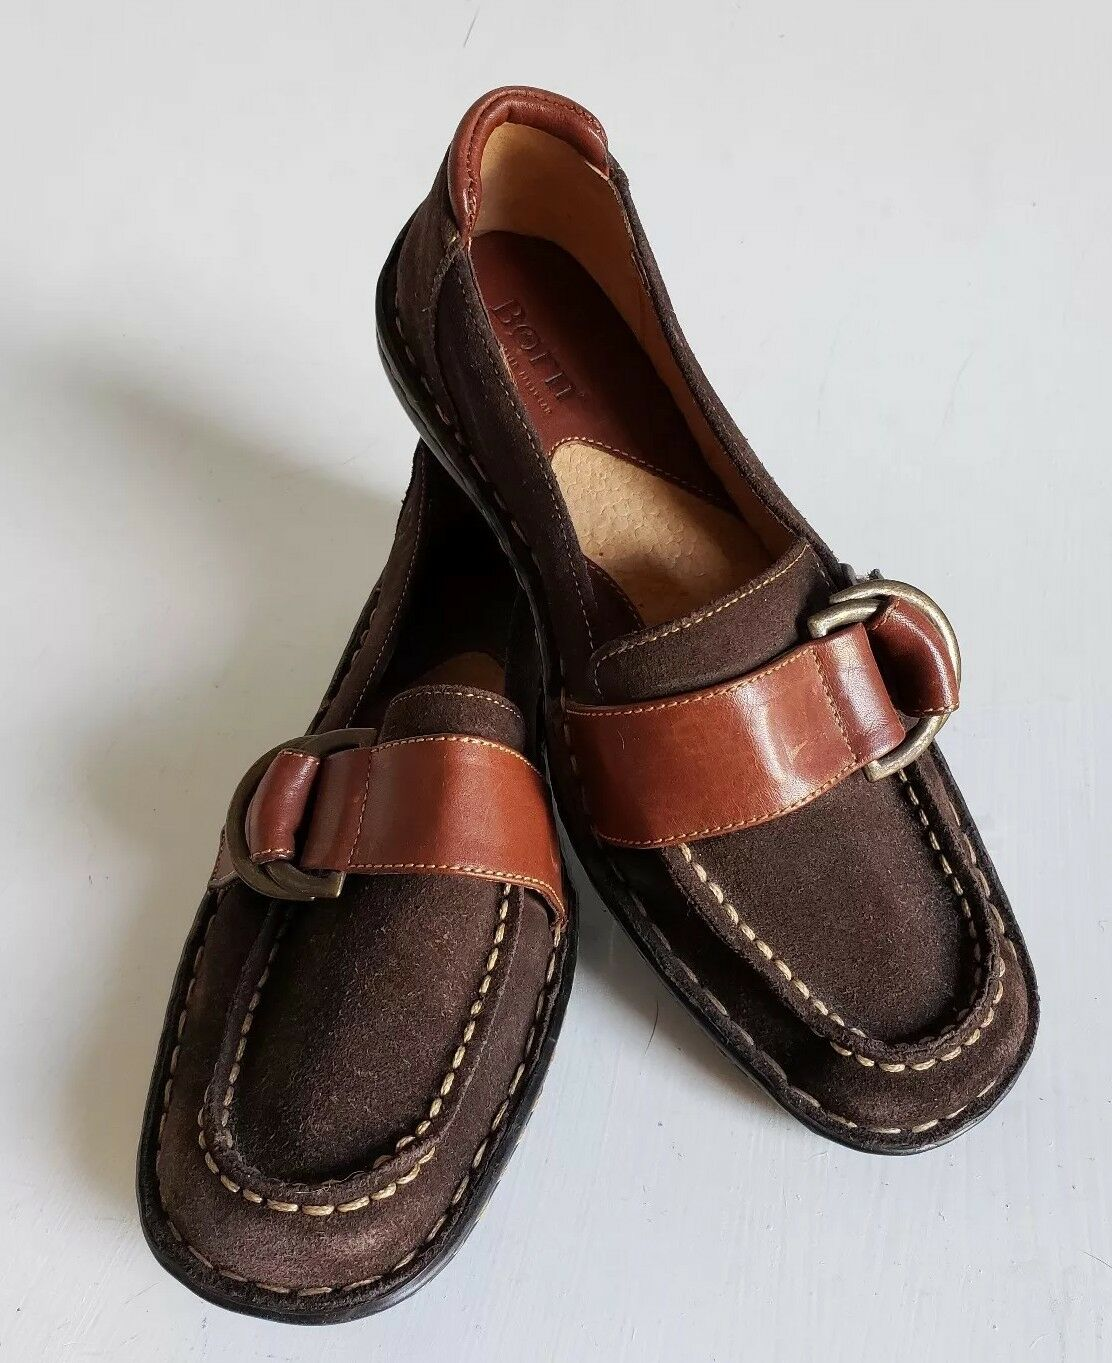 BORN Womens Brown Leather Casual Slip On Loafer shoes US Sz 7